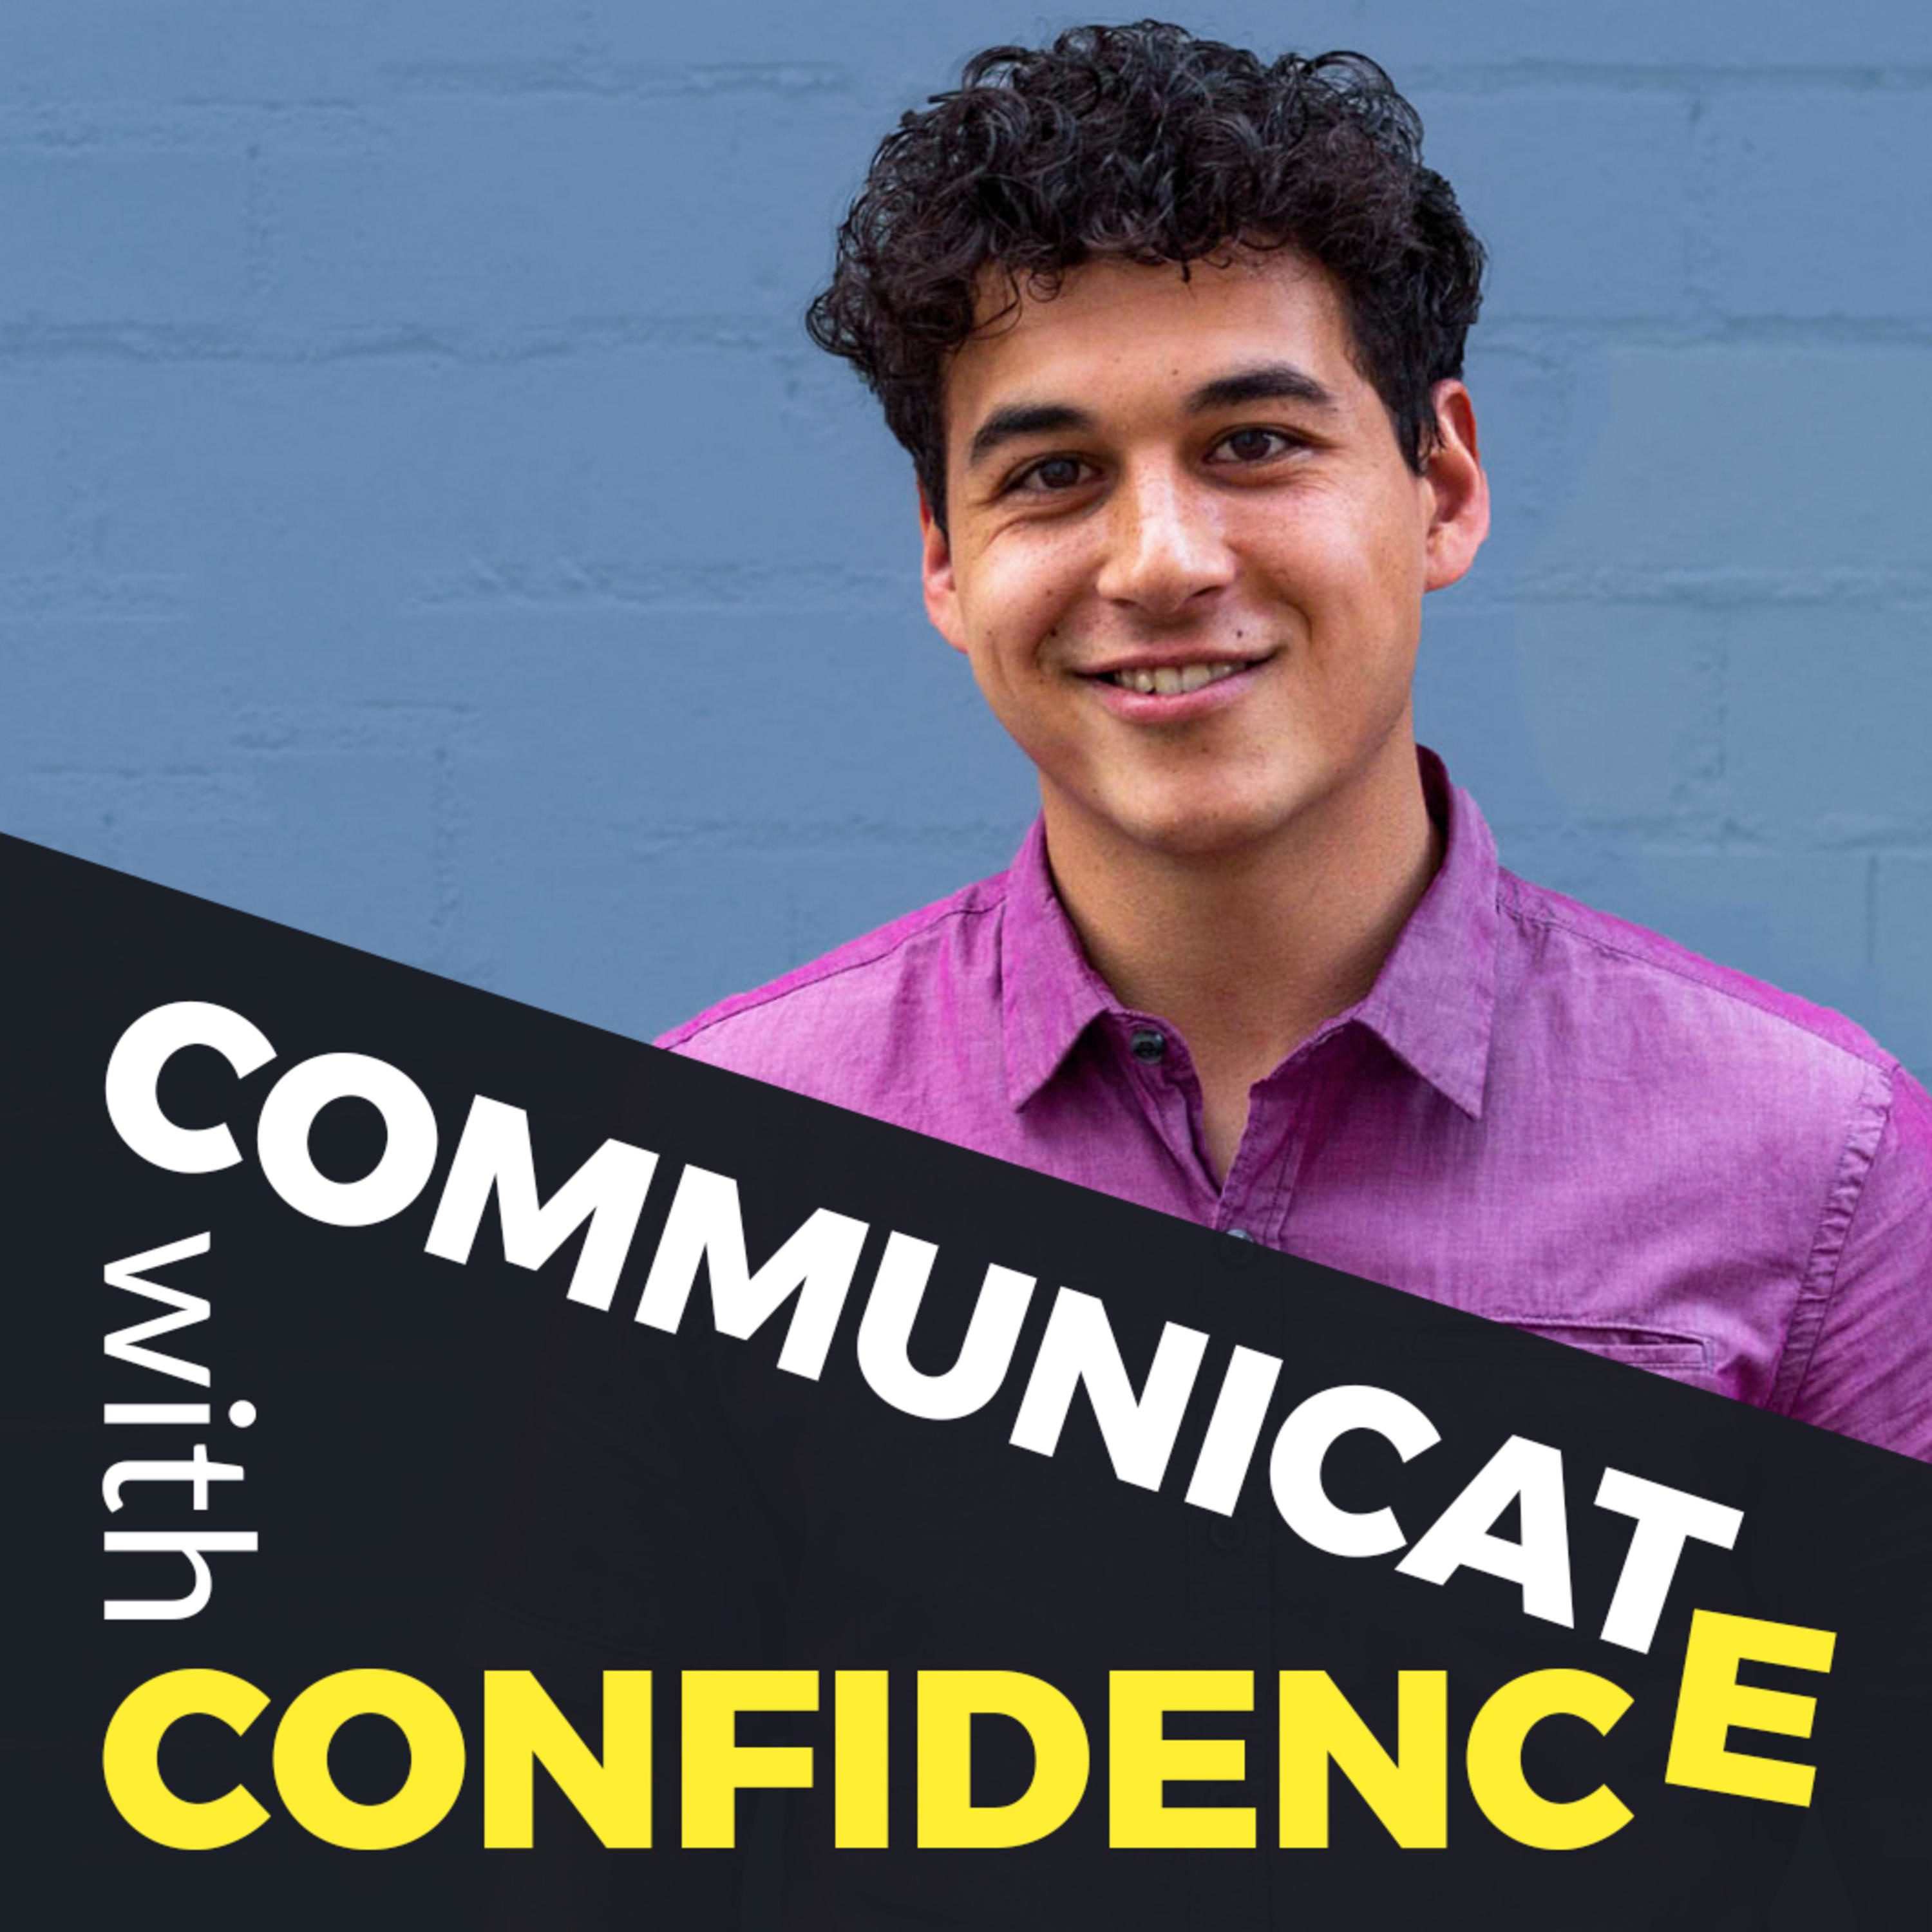 Comunicate with Confidence with Luke Maxwell